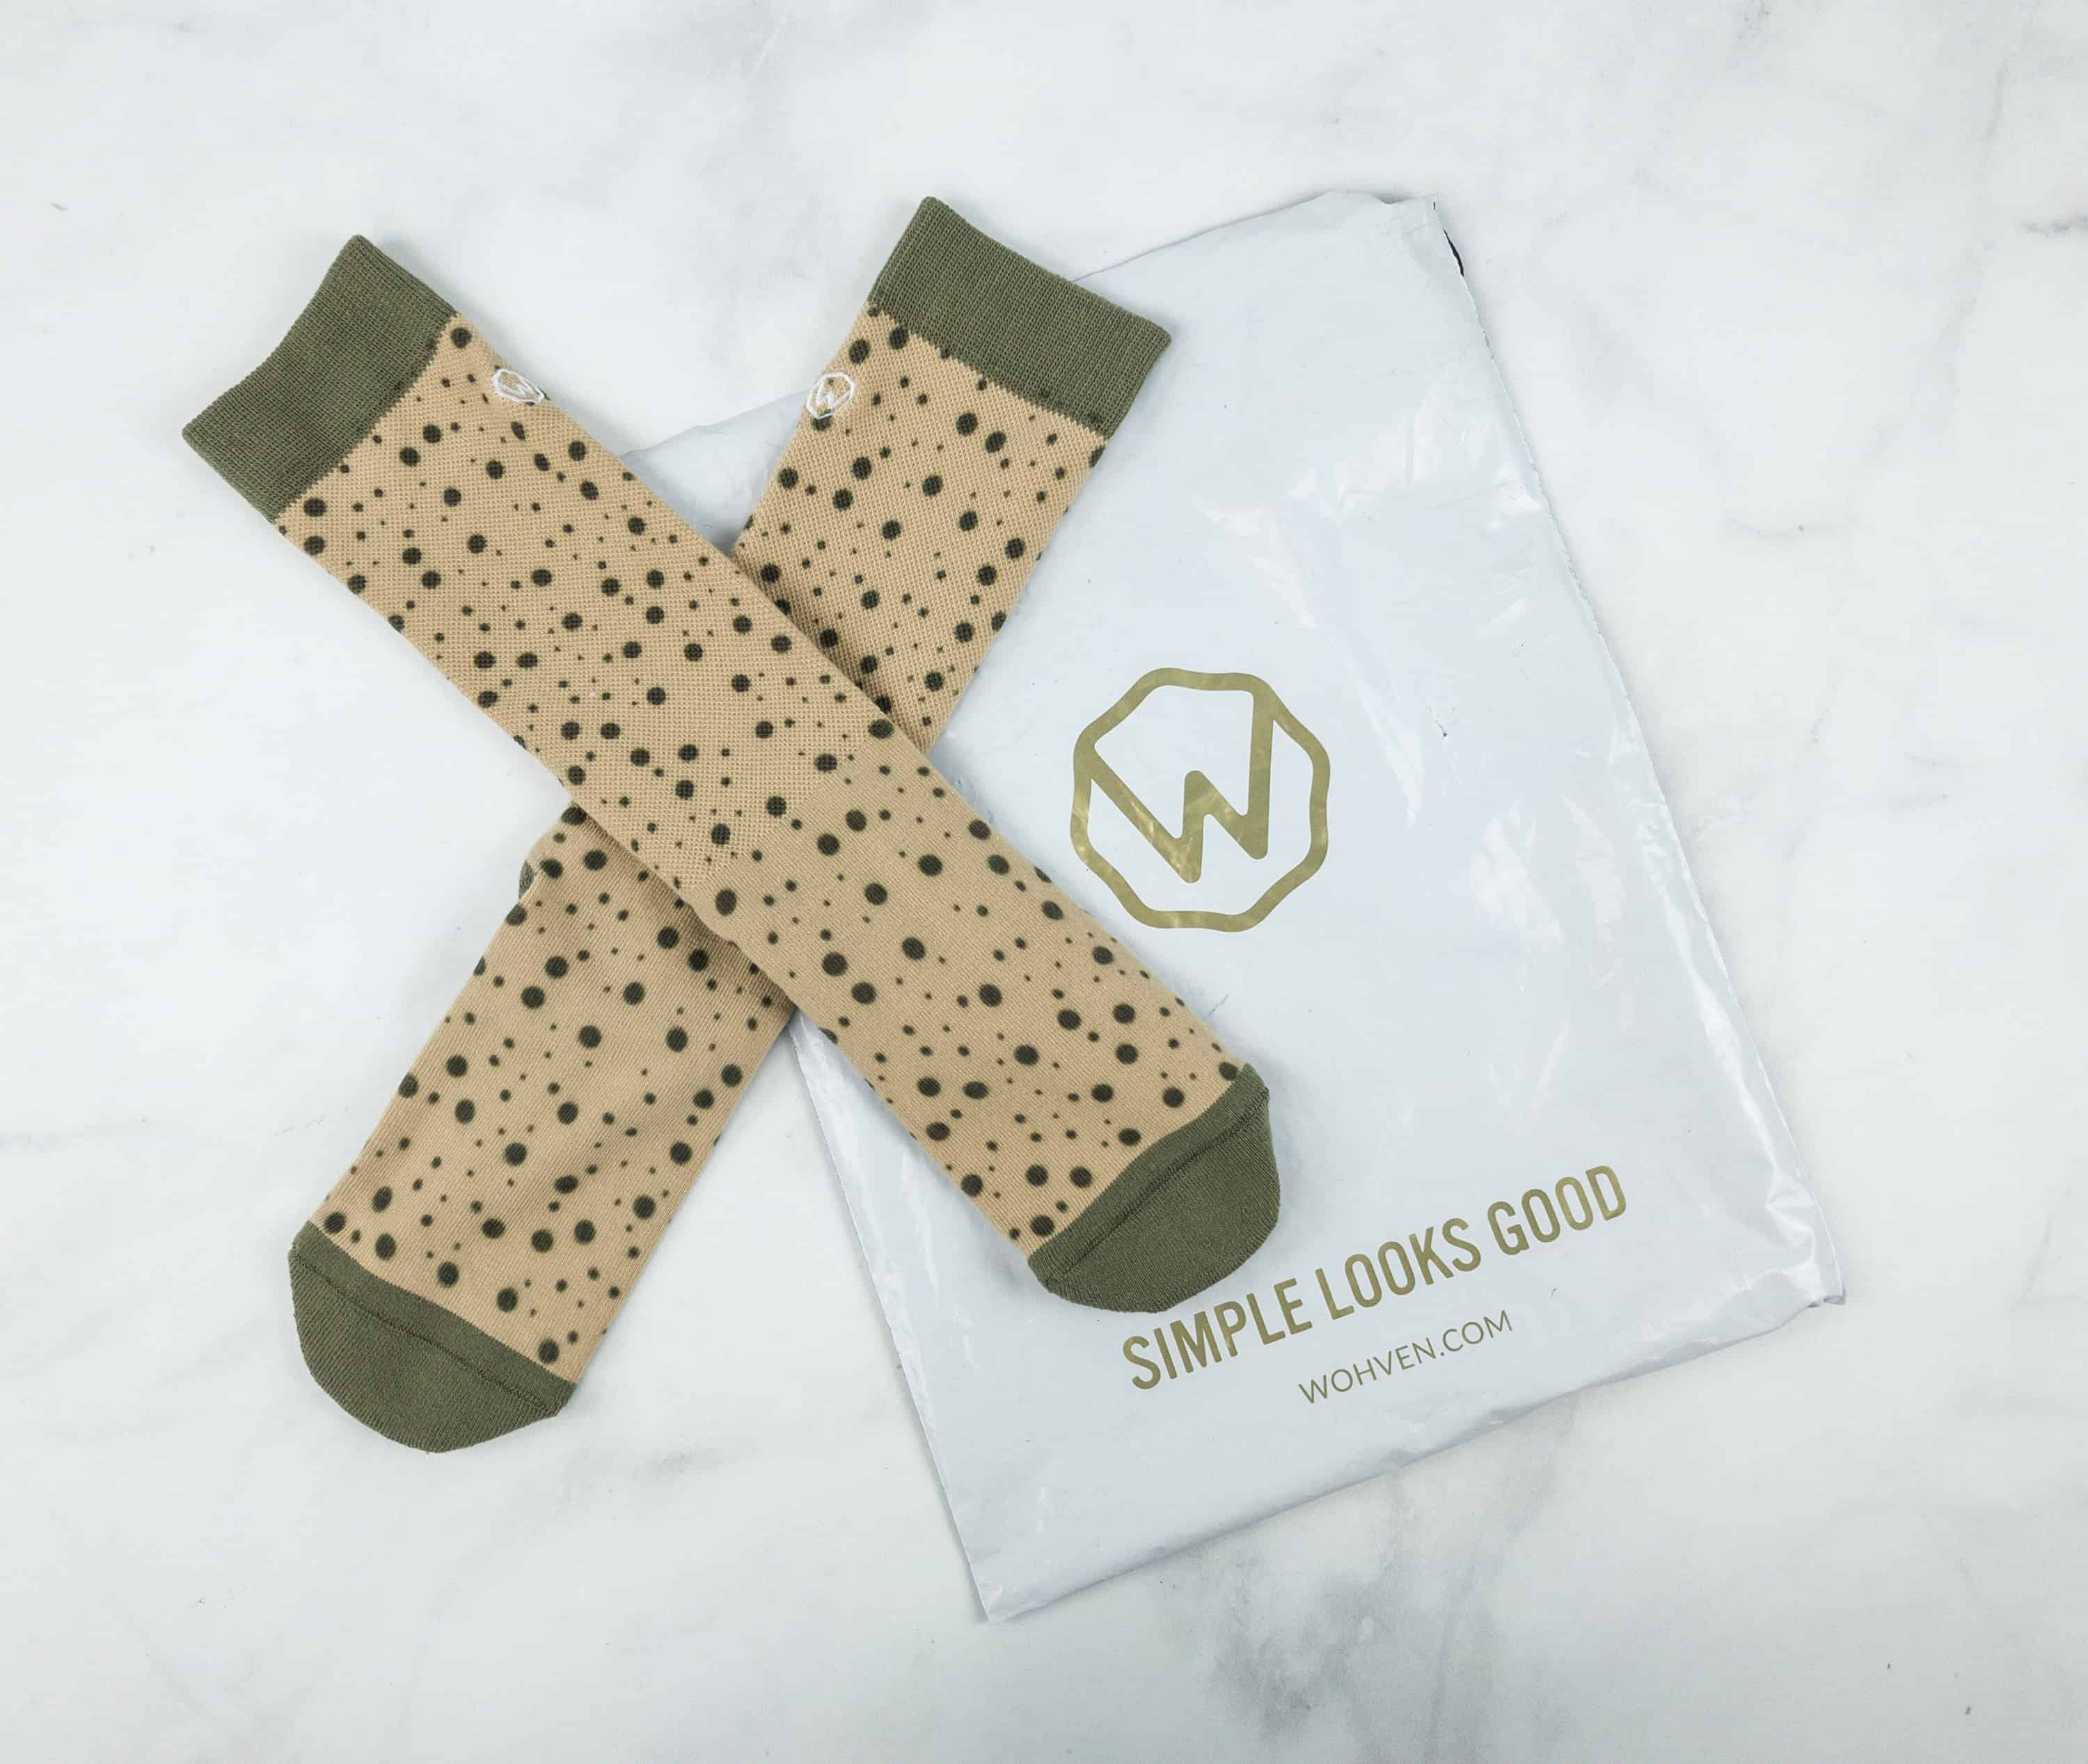 Wohven Socks Subscription November 2018 Review + Coupon!